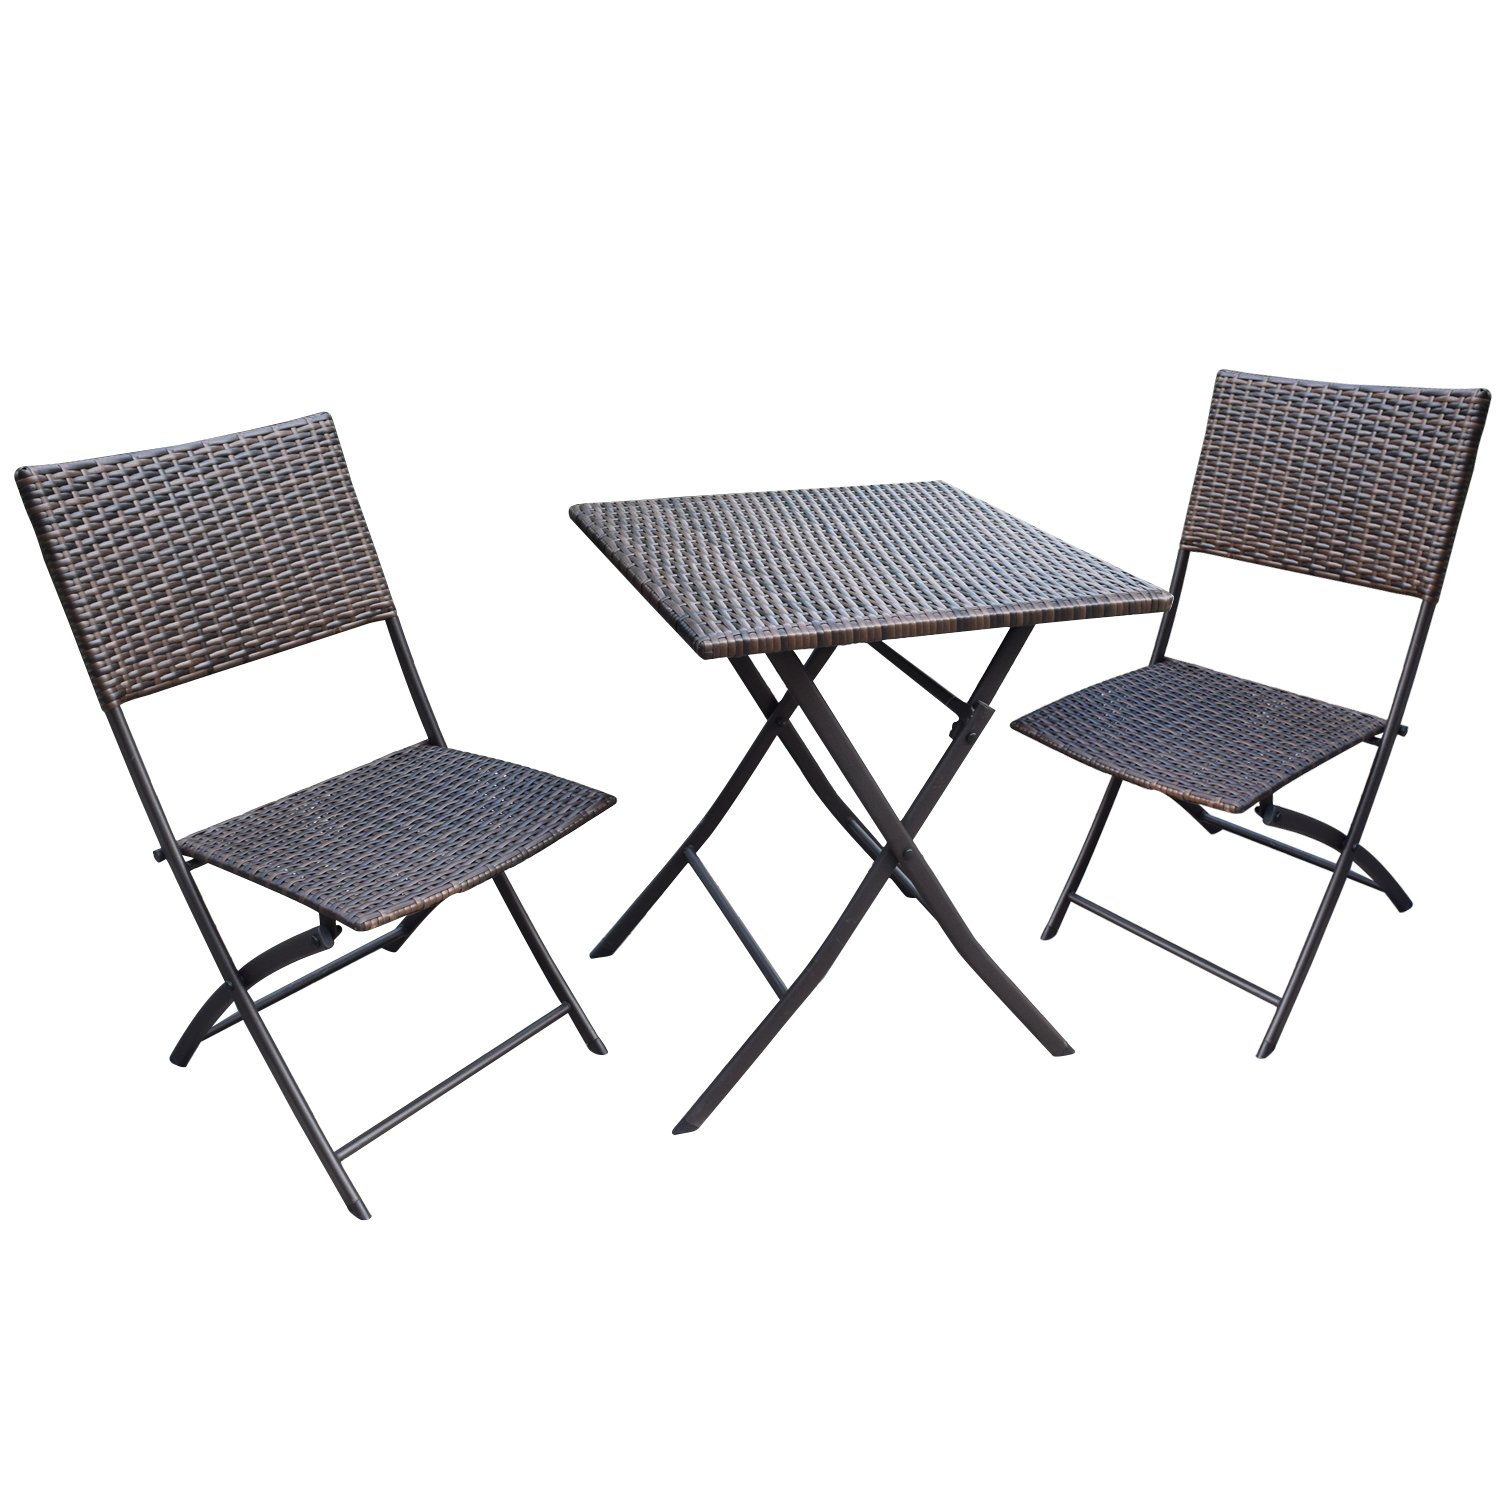 Joveco Folding Table and Chair 3-Piece Rattan Wicker Outdoor Backyard Bistro Set - (Set of Three)